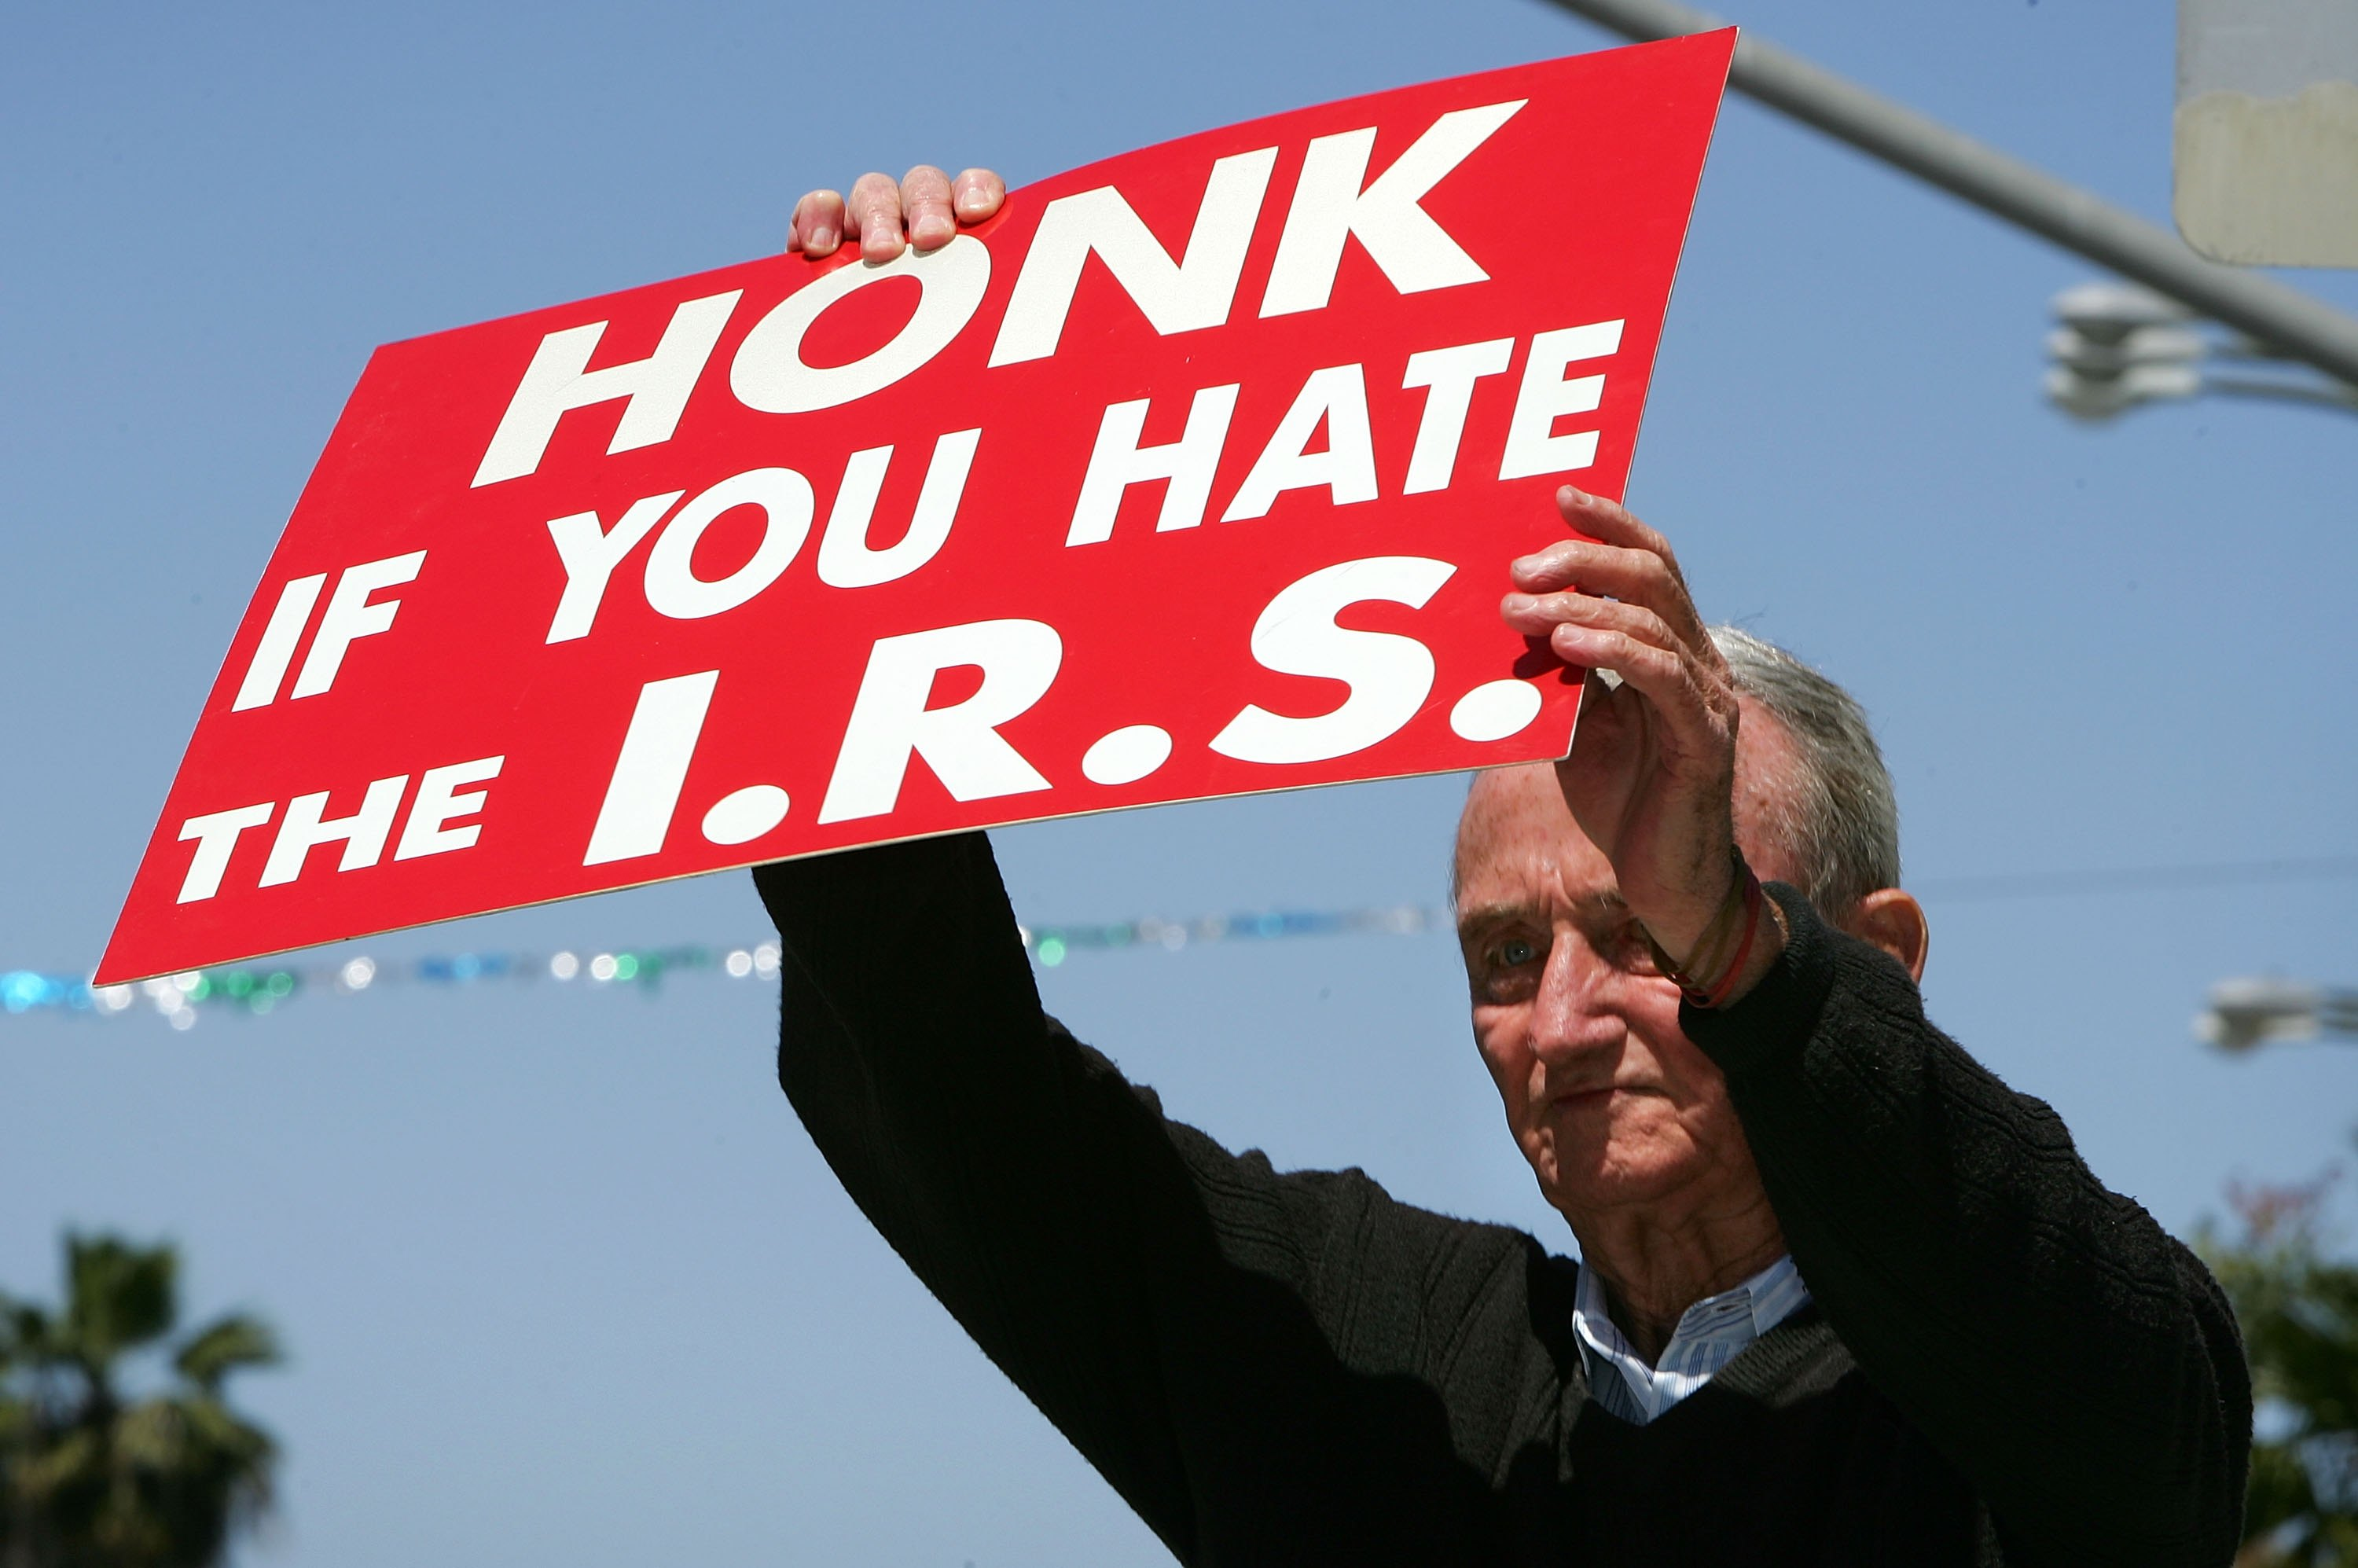 An anti-IRS protester holds a sign up at a rally. (Getty)